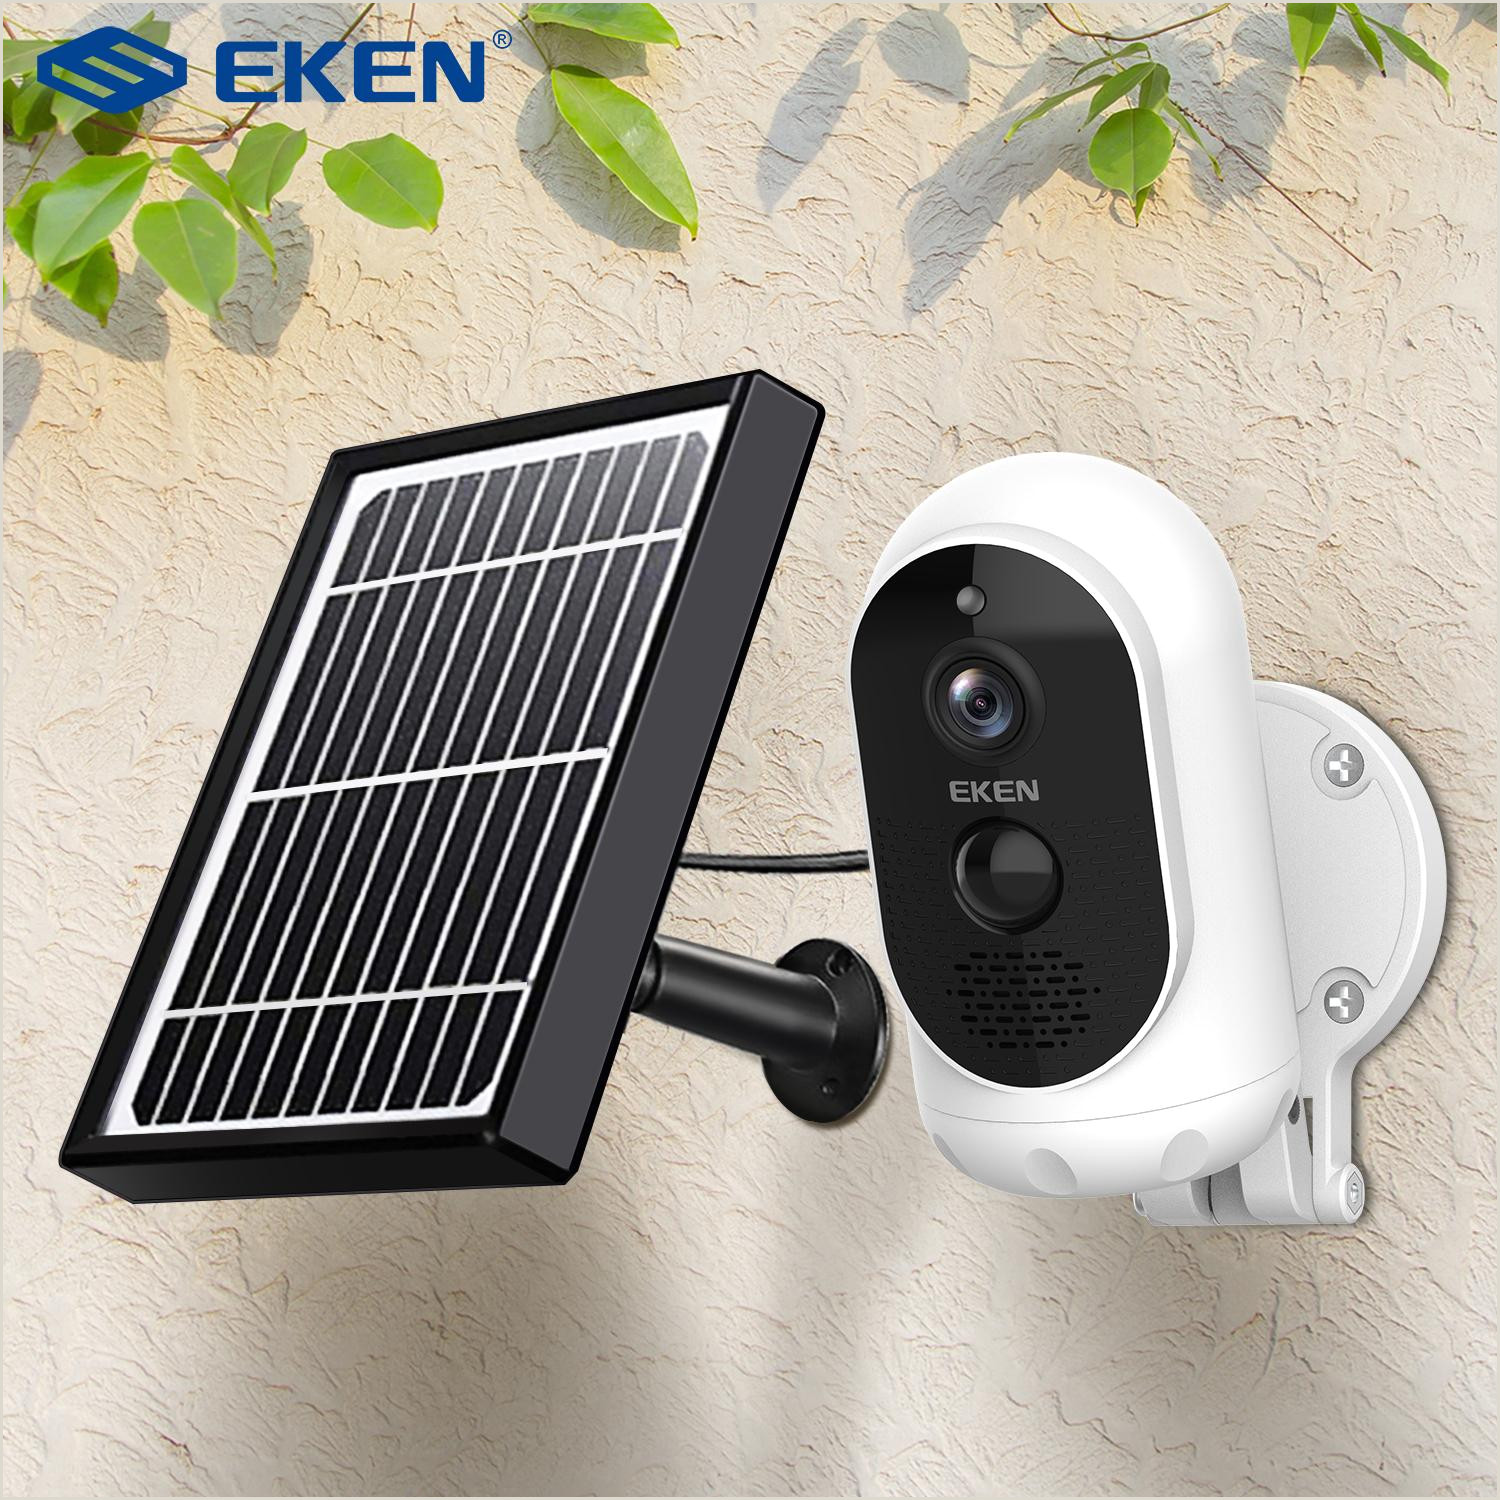 Best Business Cards For Solar Eken Astro 1080p Battery Camera With Solar Panel Ip65 Weatherproof Motion Detection 6000mah Battery Security Camera Internet Monitor Internet